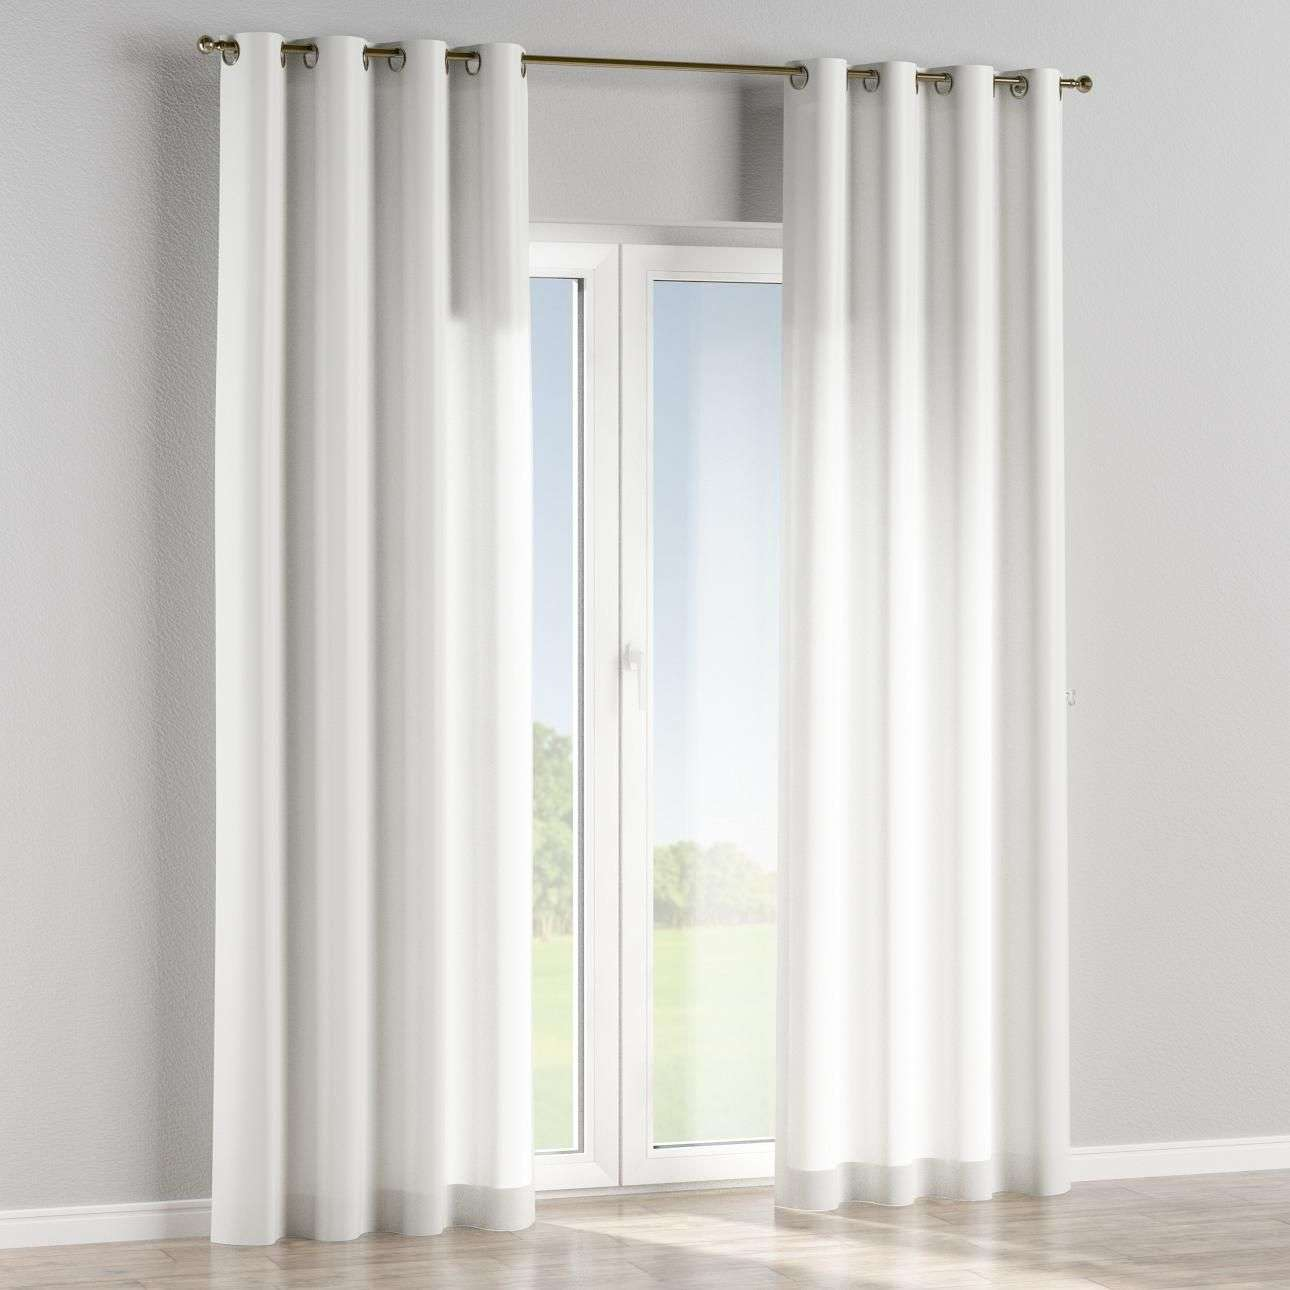 Eyelet lined curtains in collection Rustica, fabric: 140-95